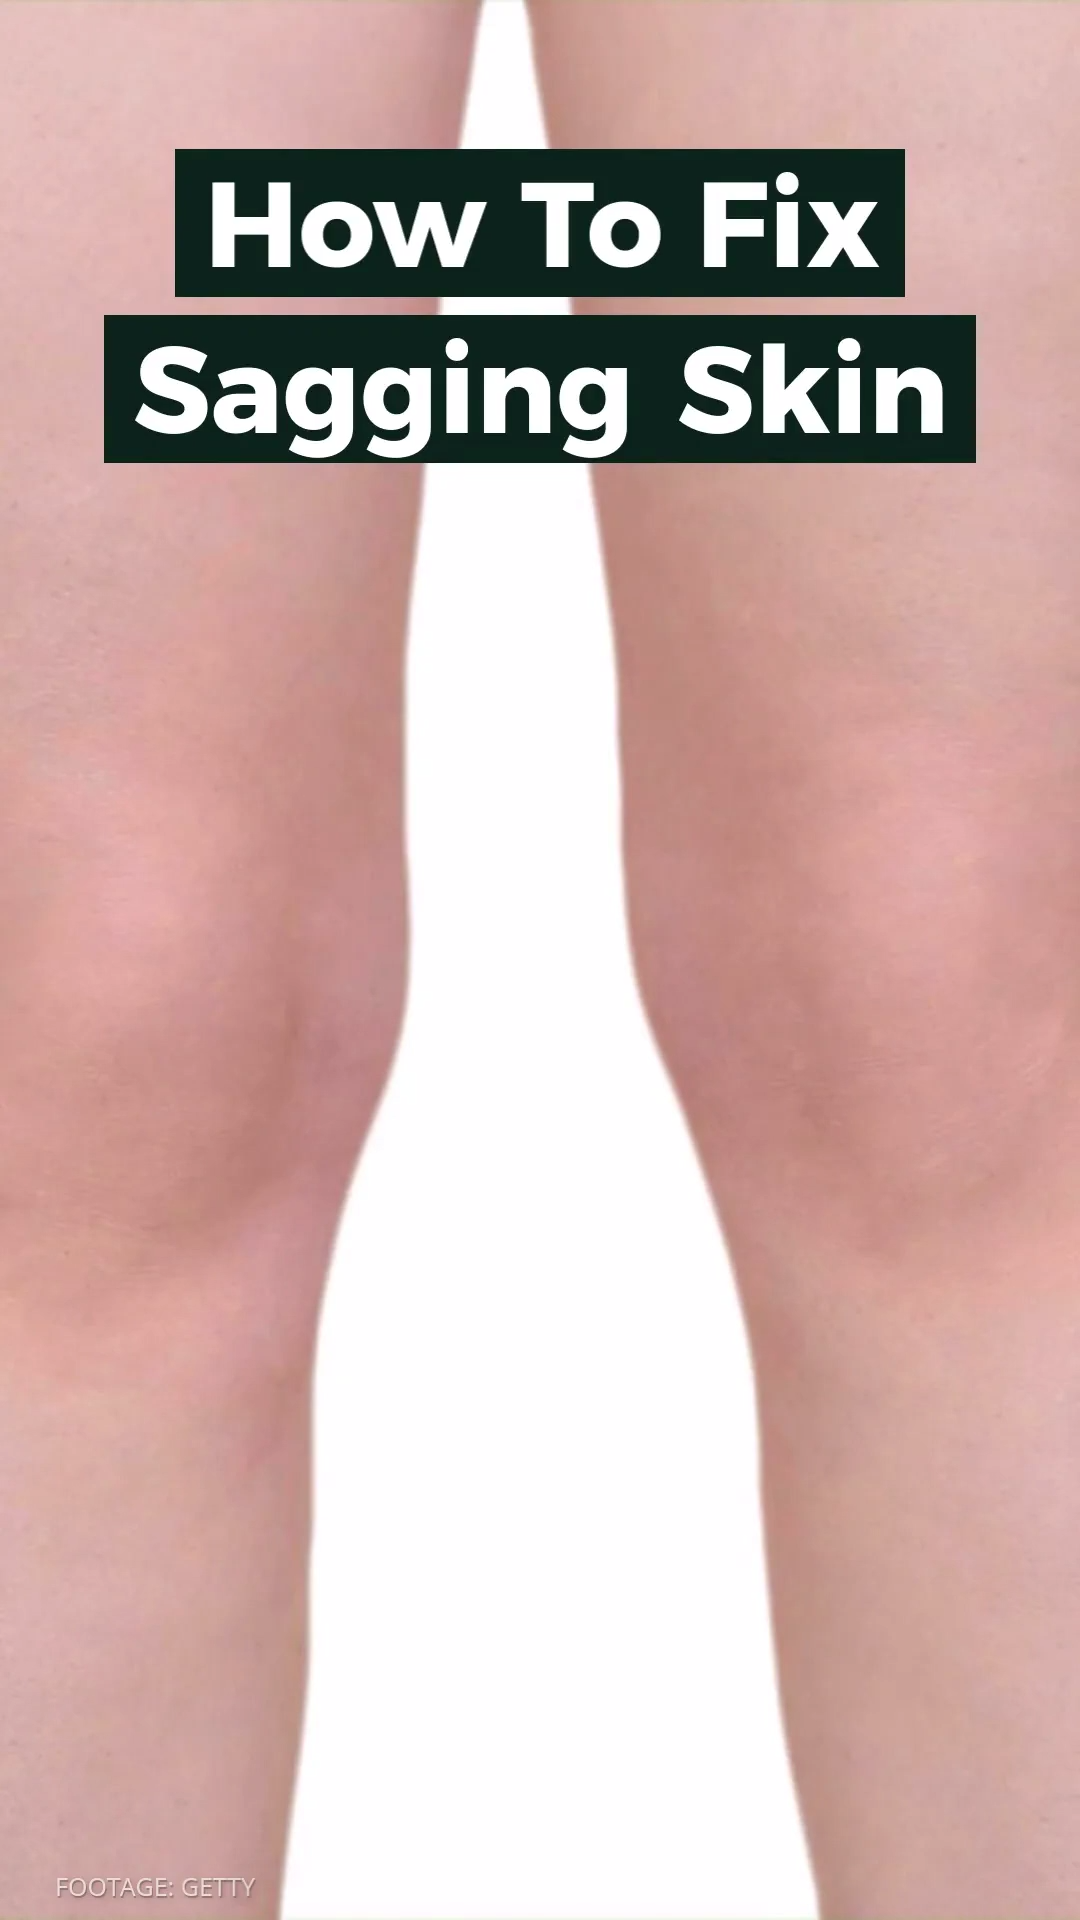 75df9dd3f1c4a793508b9e66cccabc27 - How To Get Rid Of Crepey Skin On Knees